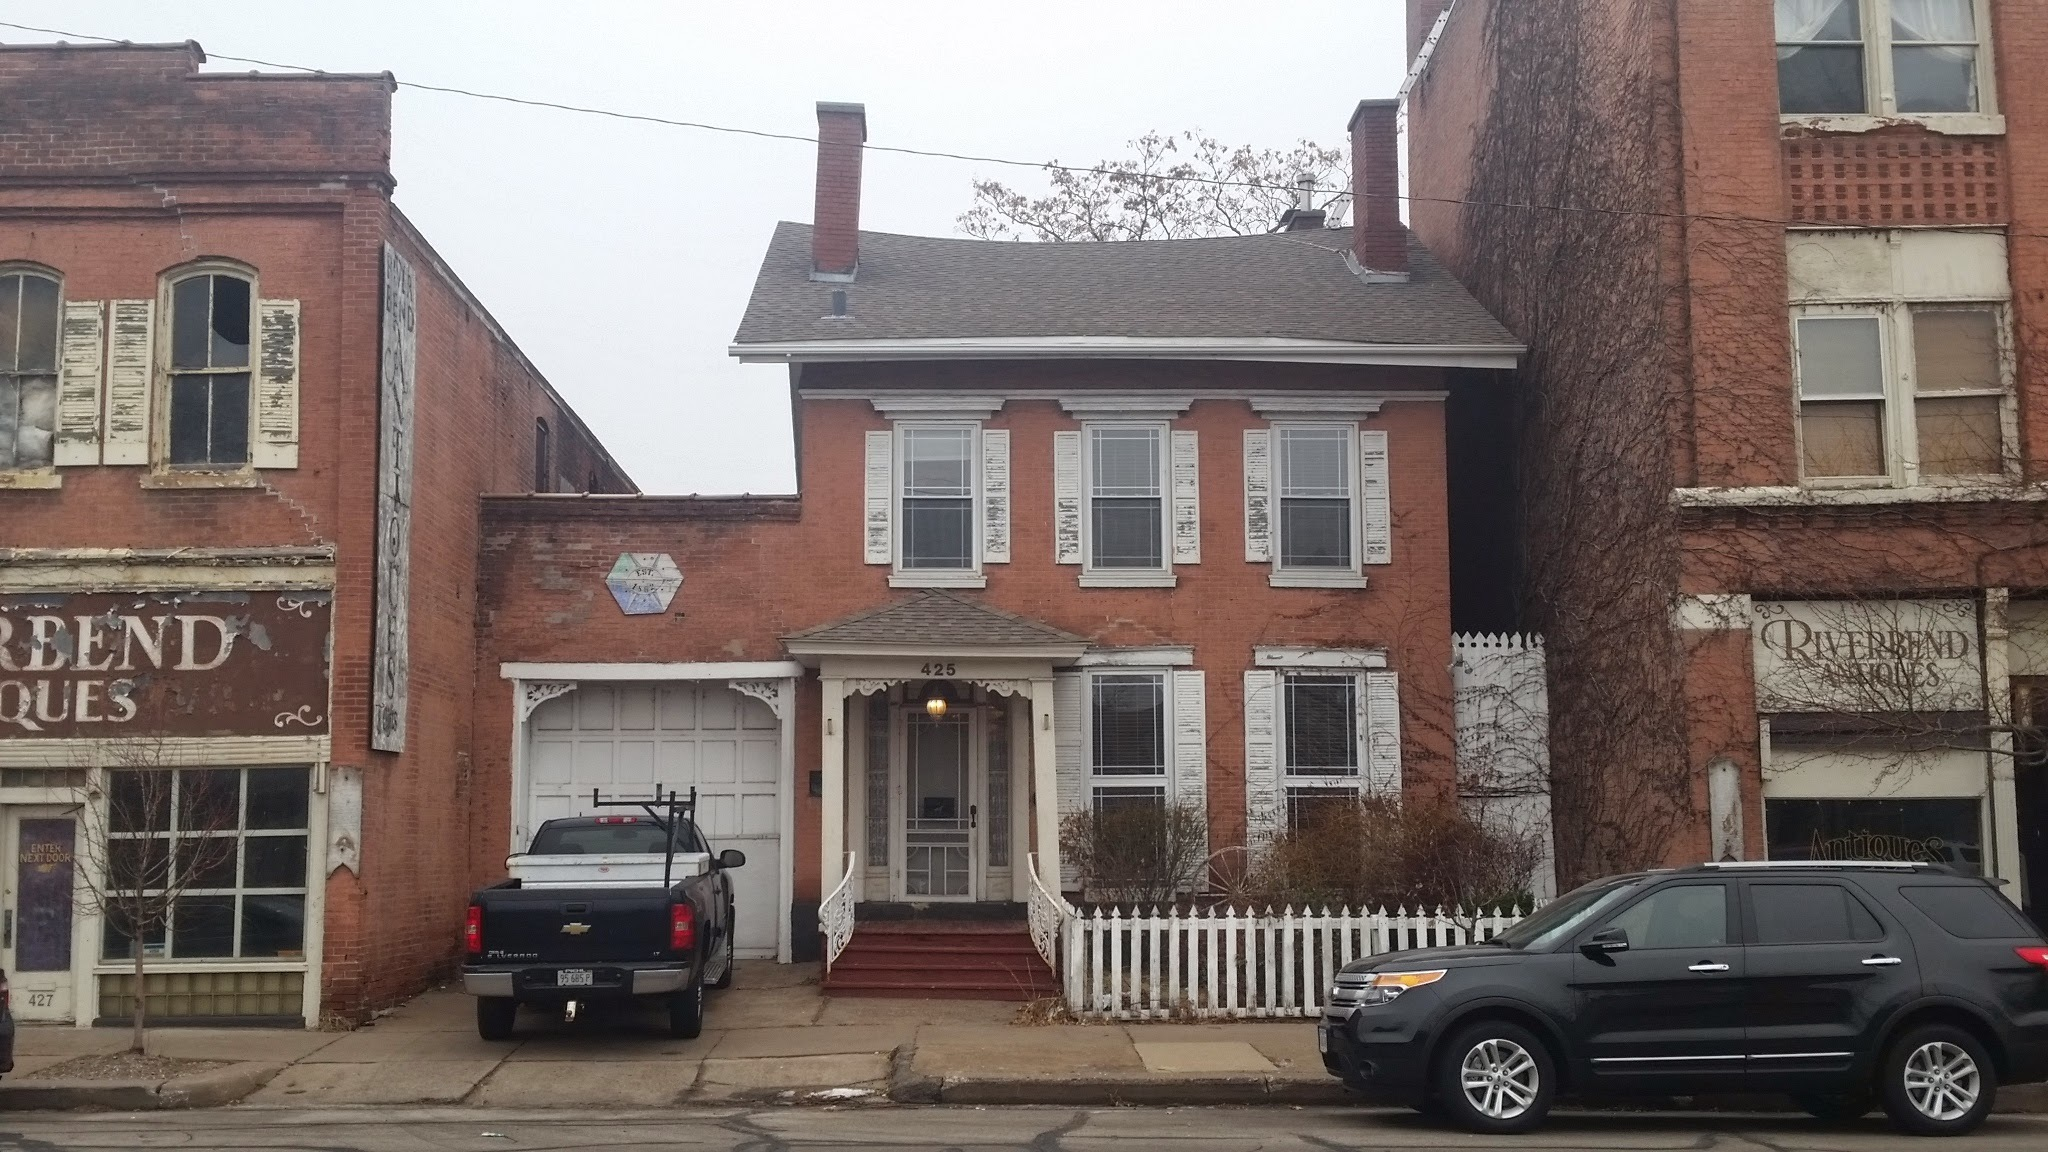 House for Rent in Davenport